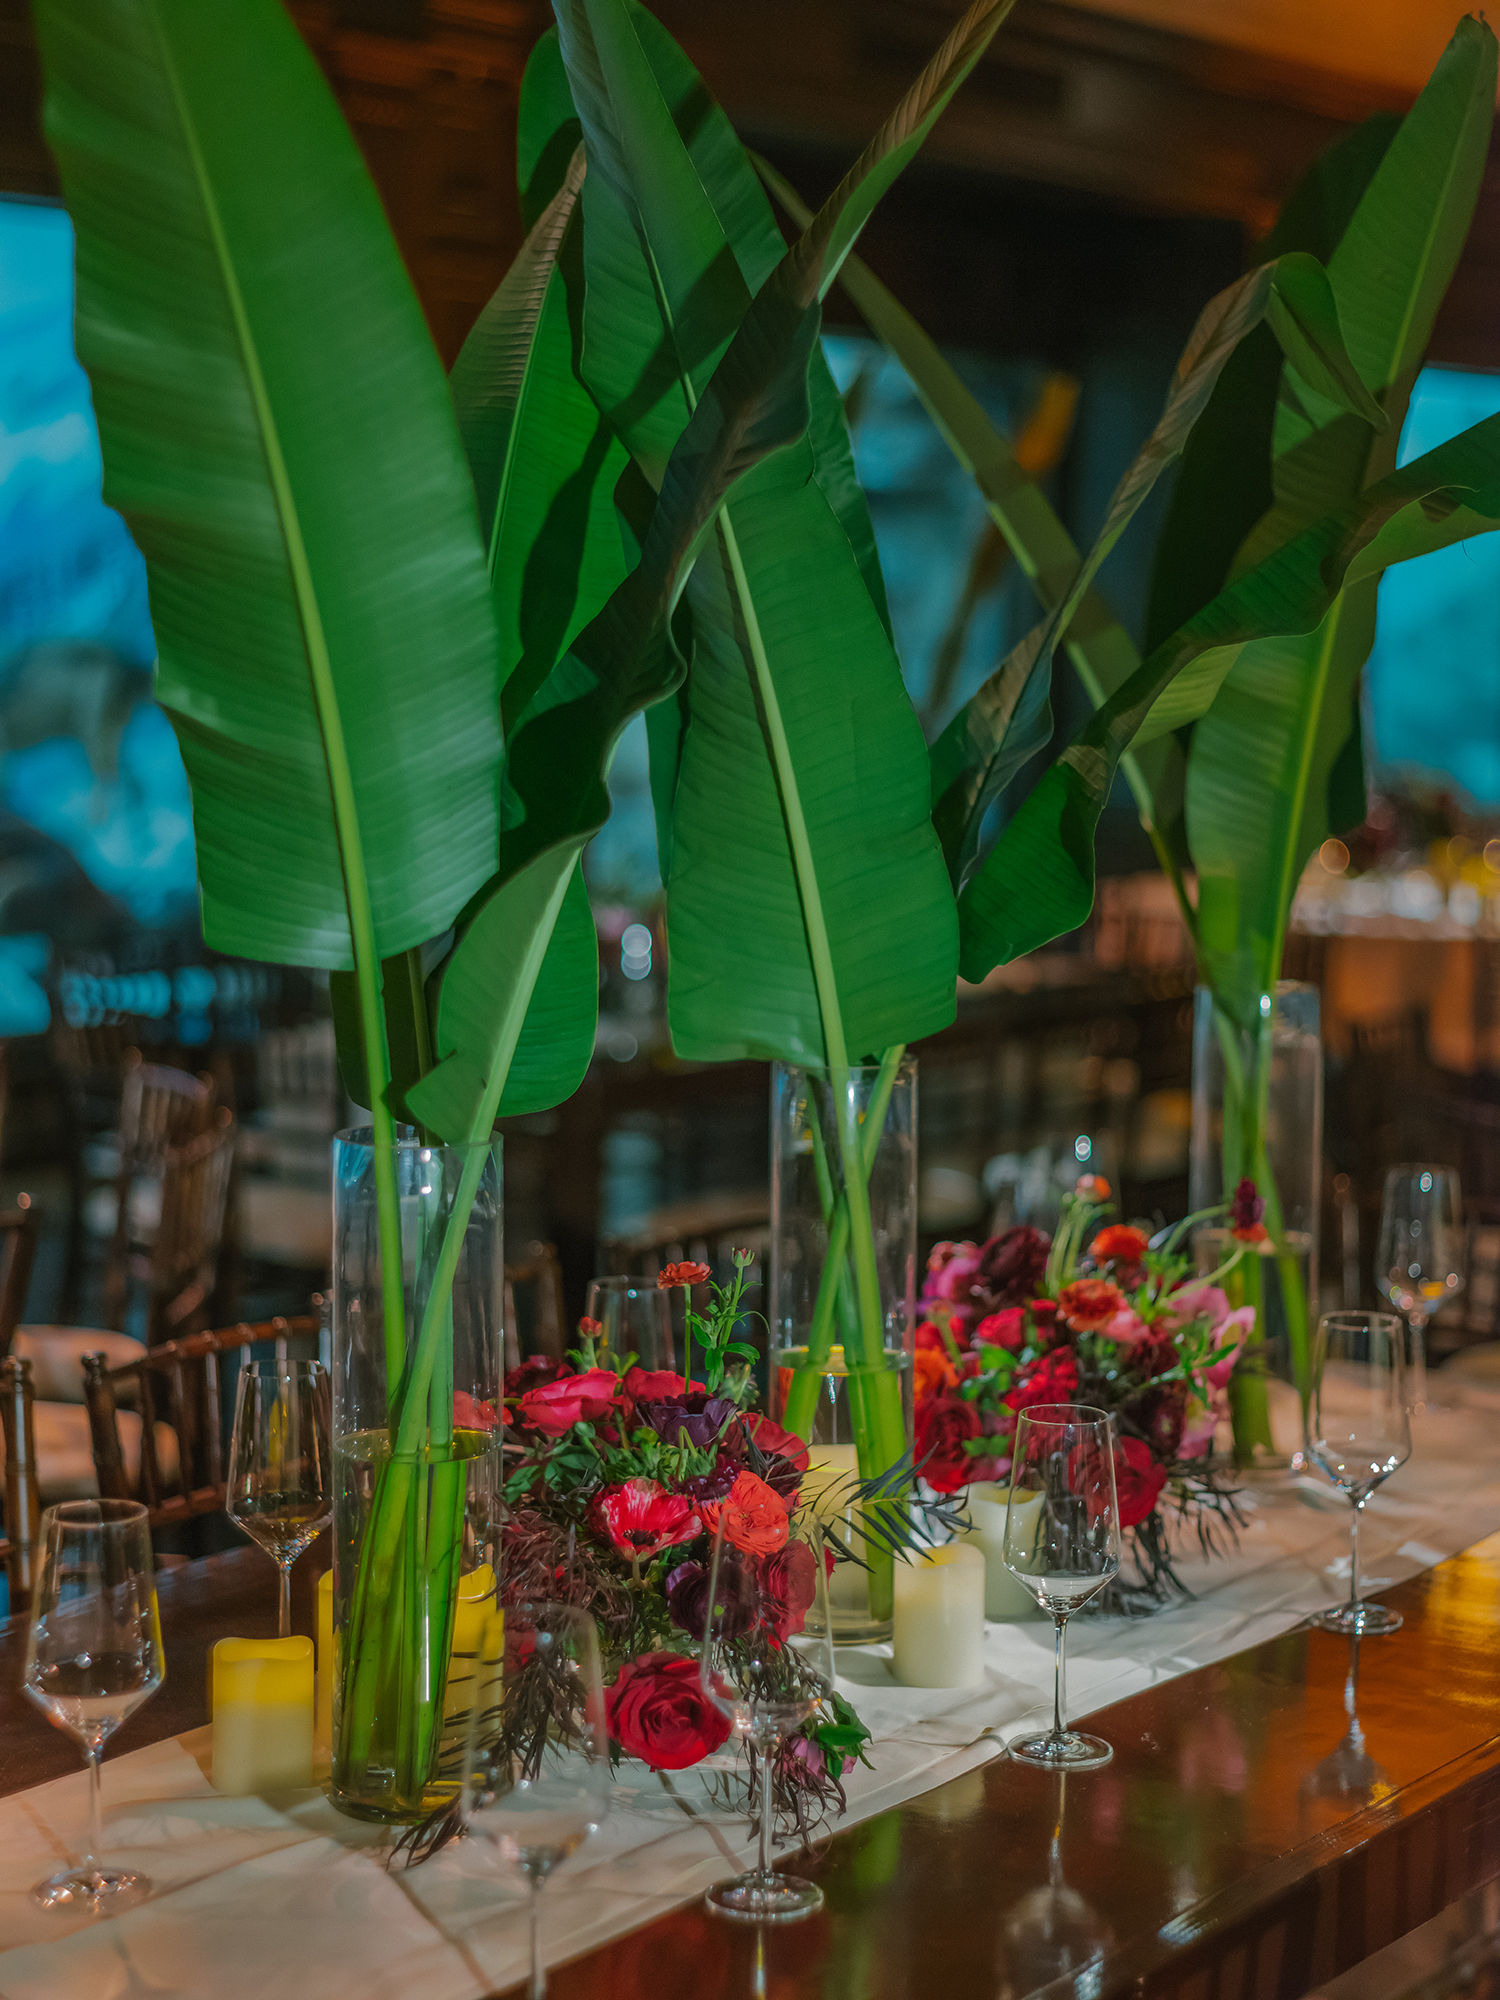 duff goldman johnna colbry wedding centerpieces with banana leaves